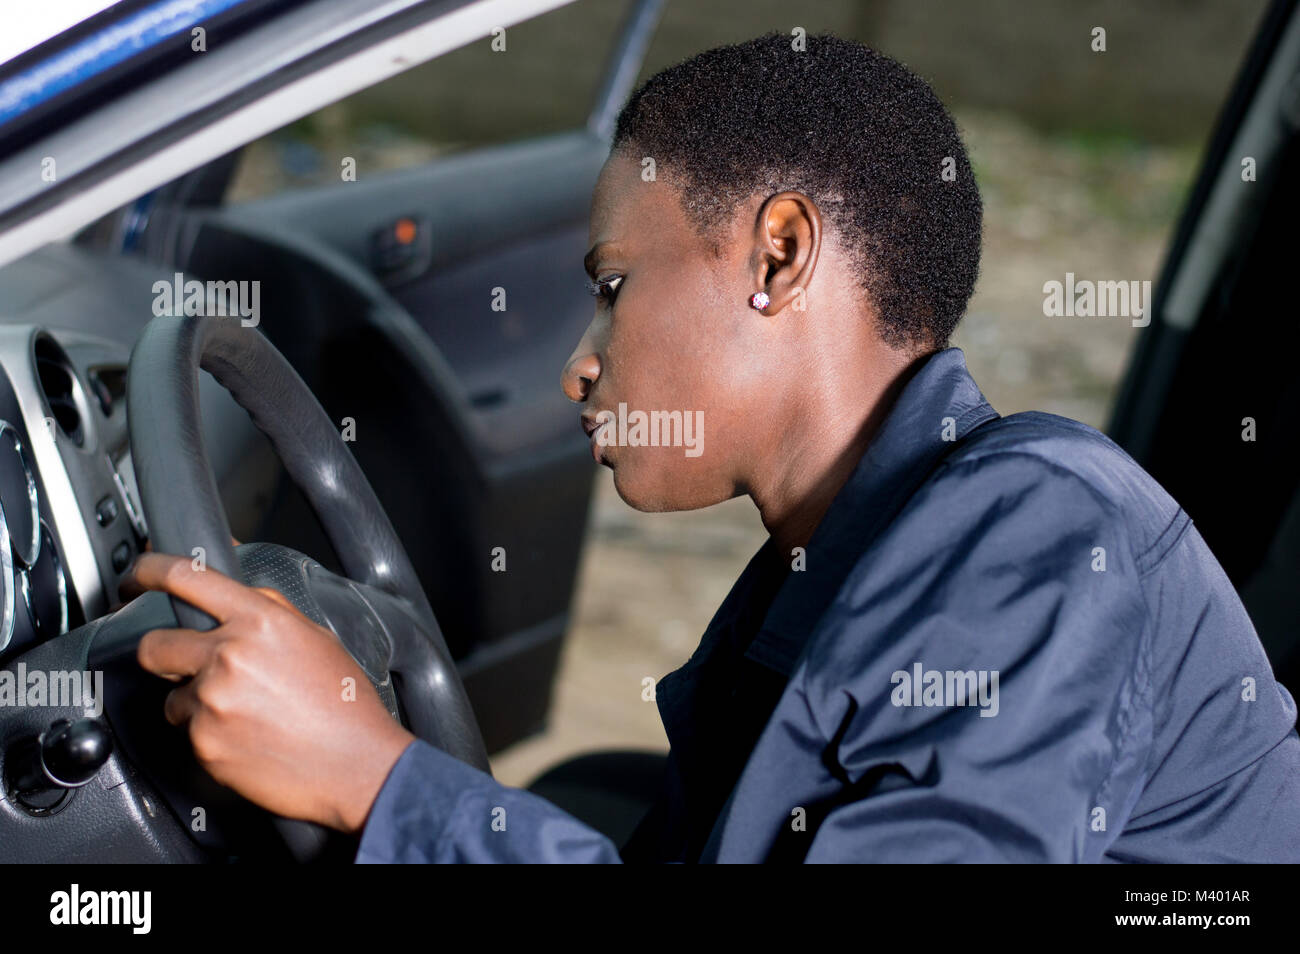 A young mechanic sitting at the wheel of a car, checks her ignition. - Stock Image